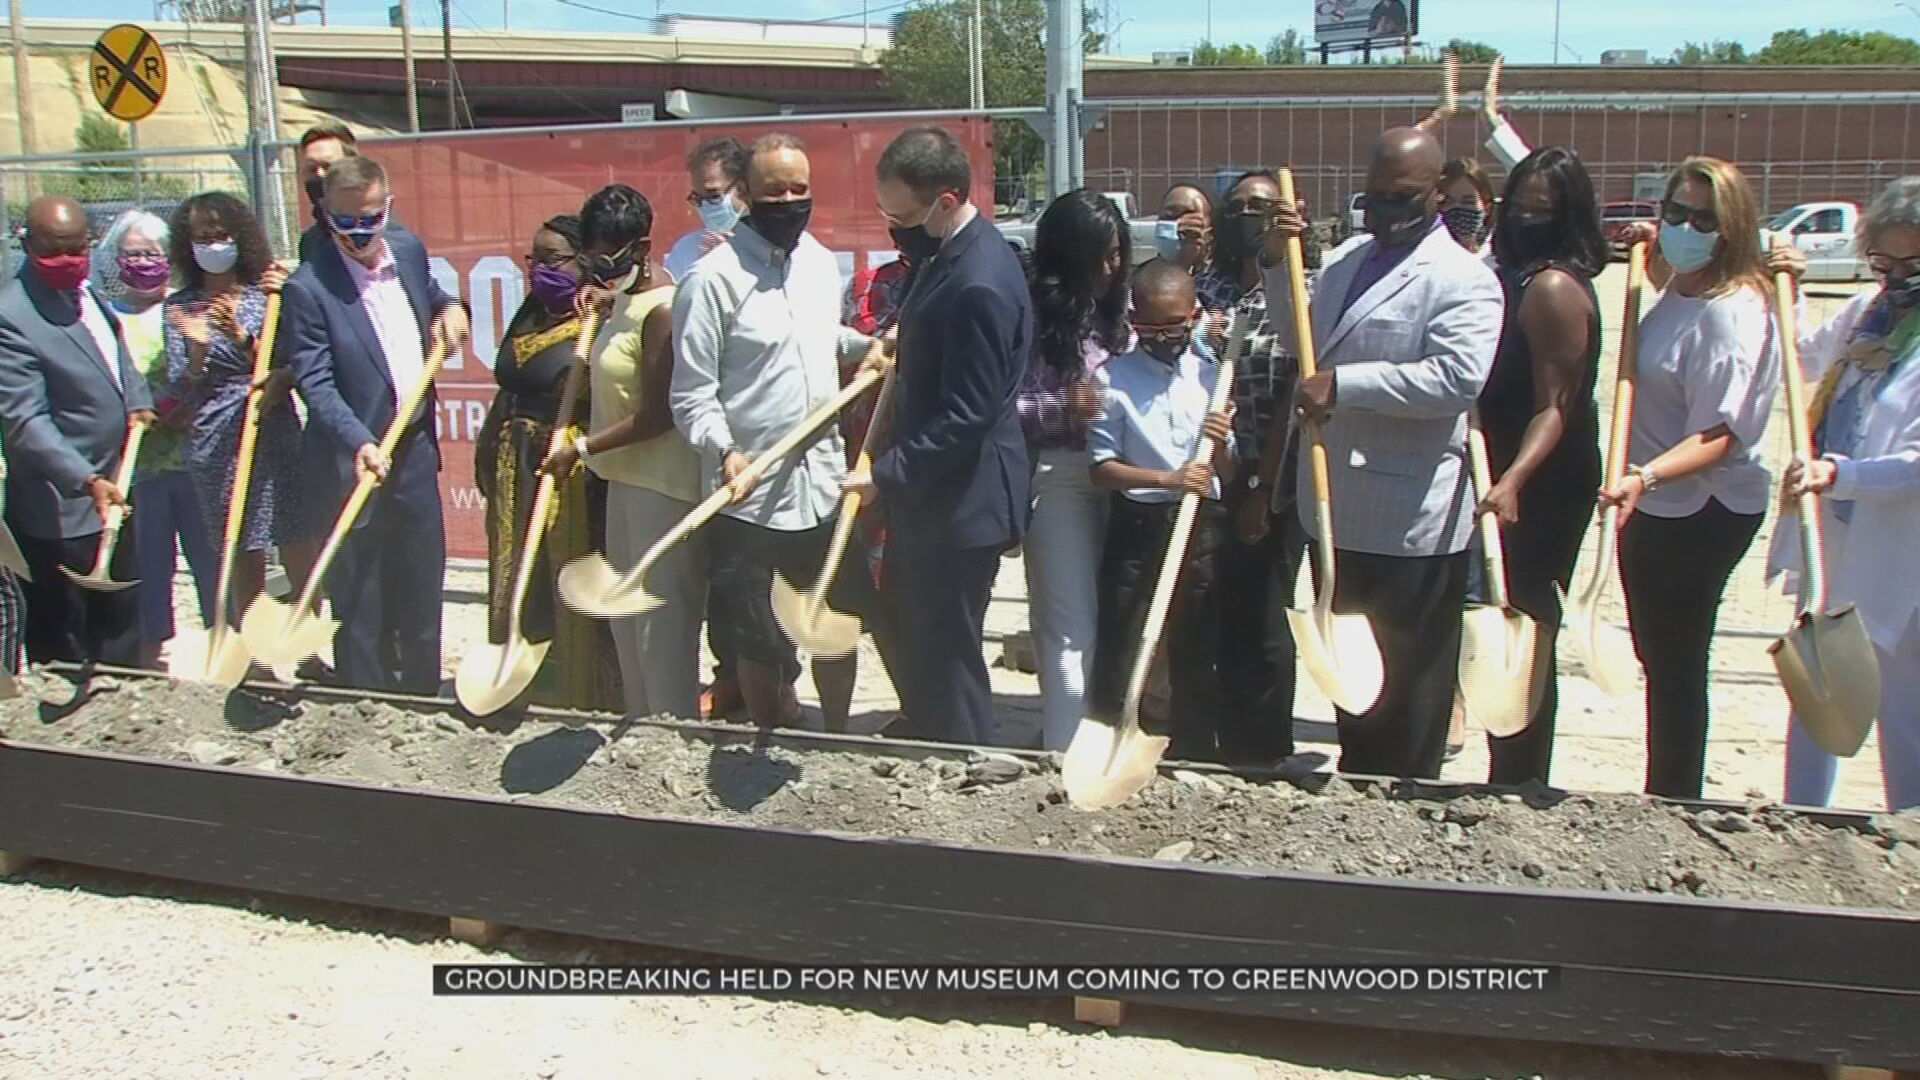 Groundbreaking Begins On New Greenwood Rising History Museum In Downtown Tulsa